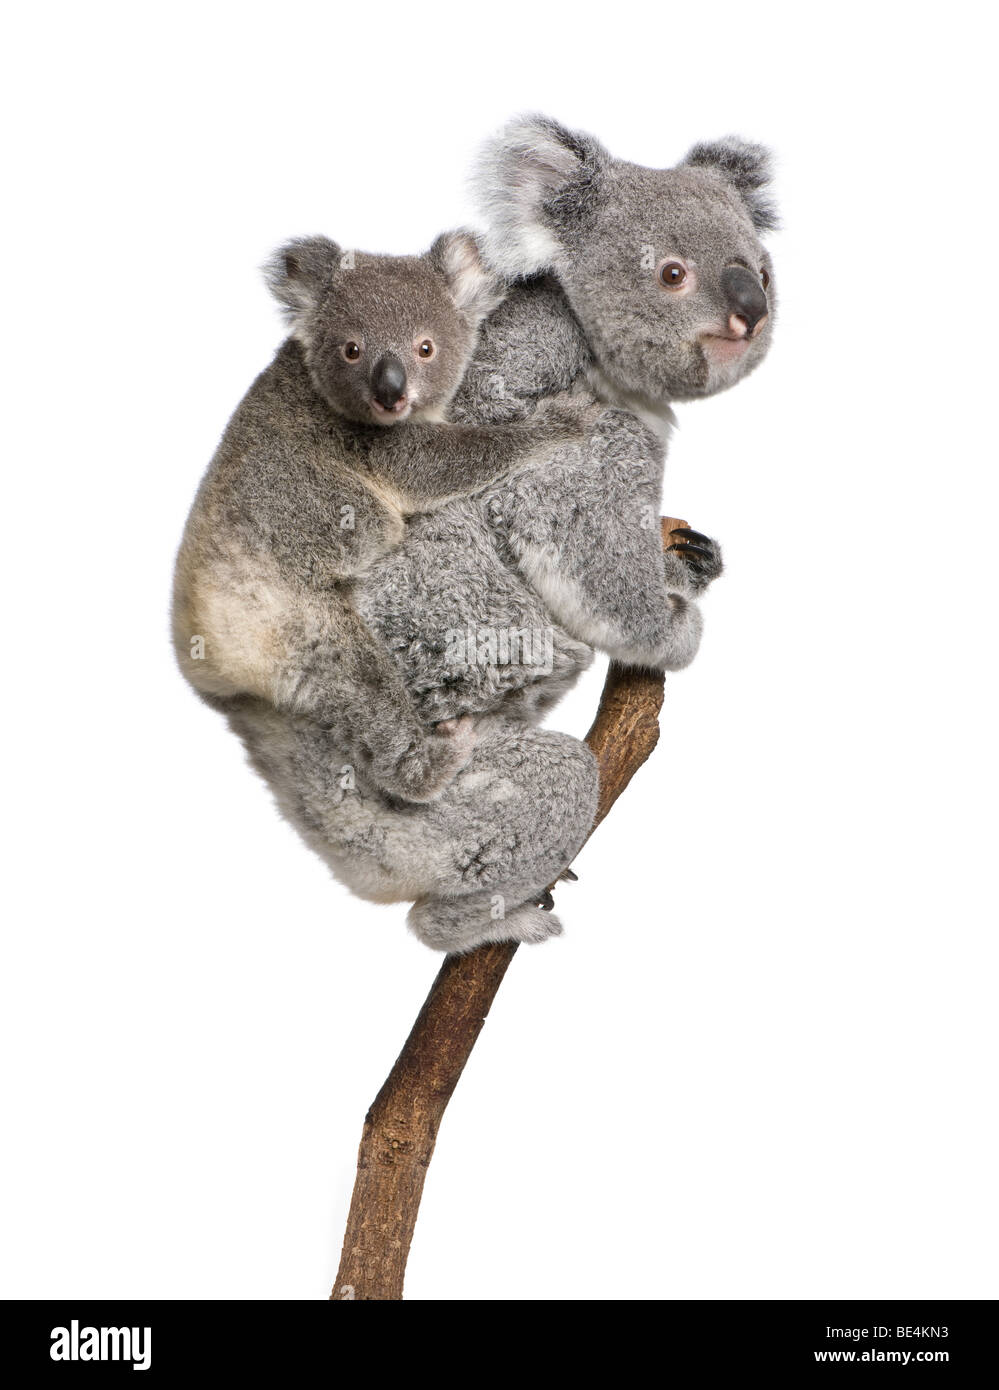 Koala bears climbing tree, 4 years old and 9 months old, Phascolarctos cinereus, in front of white background - Stock Image